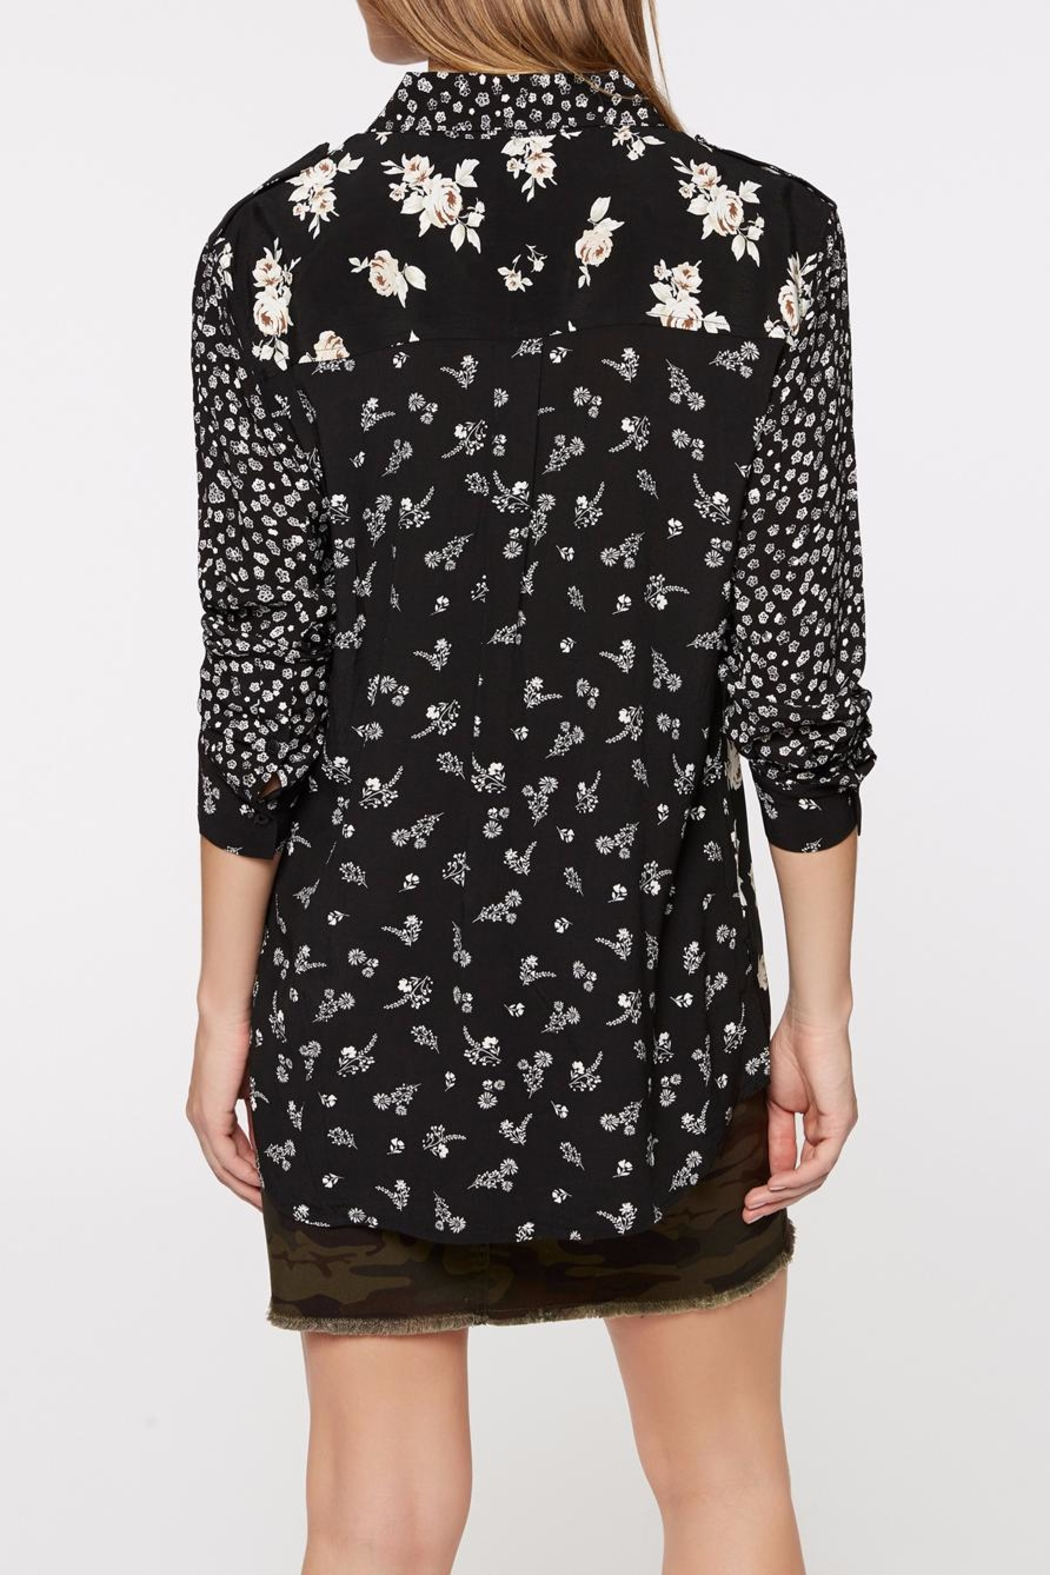 Sanctuary Patchwork Uptown Blouse - Front Full Image